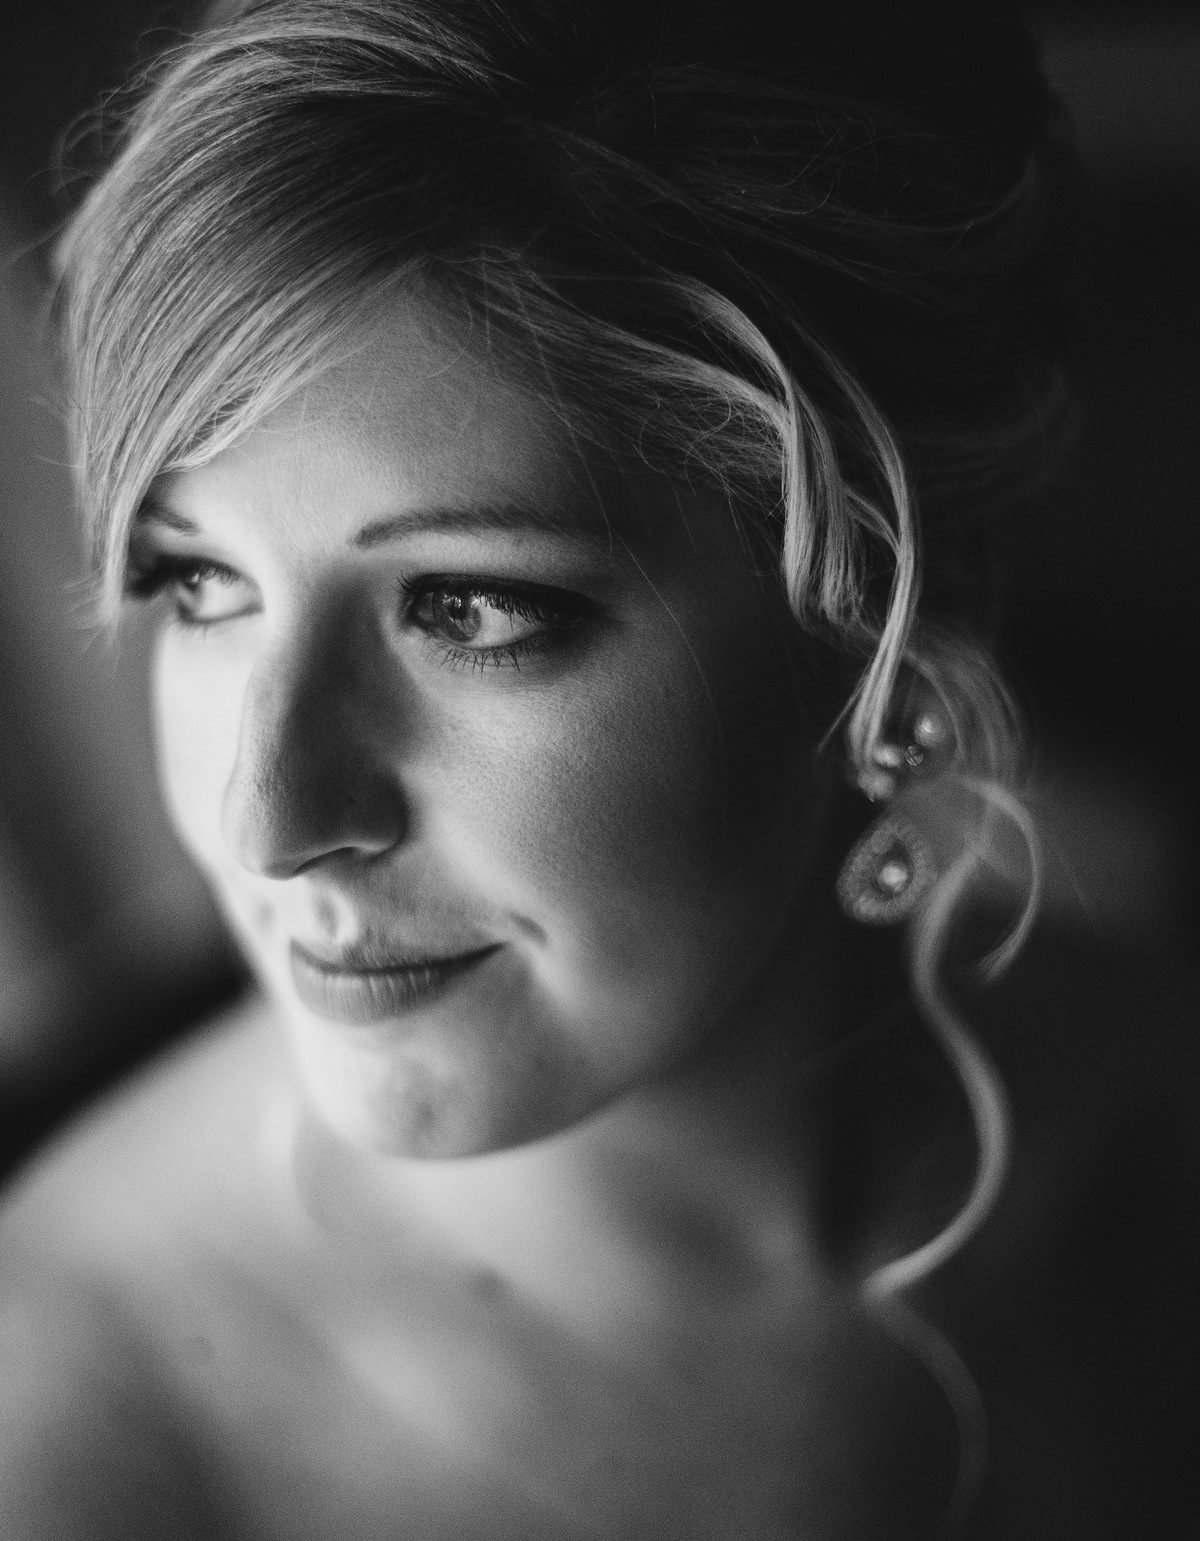 006b beautiful bridal portrait in window light